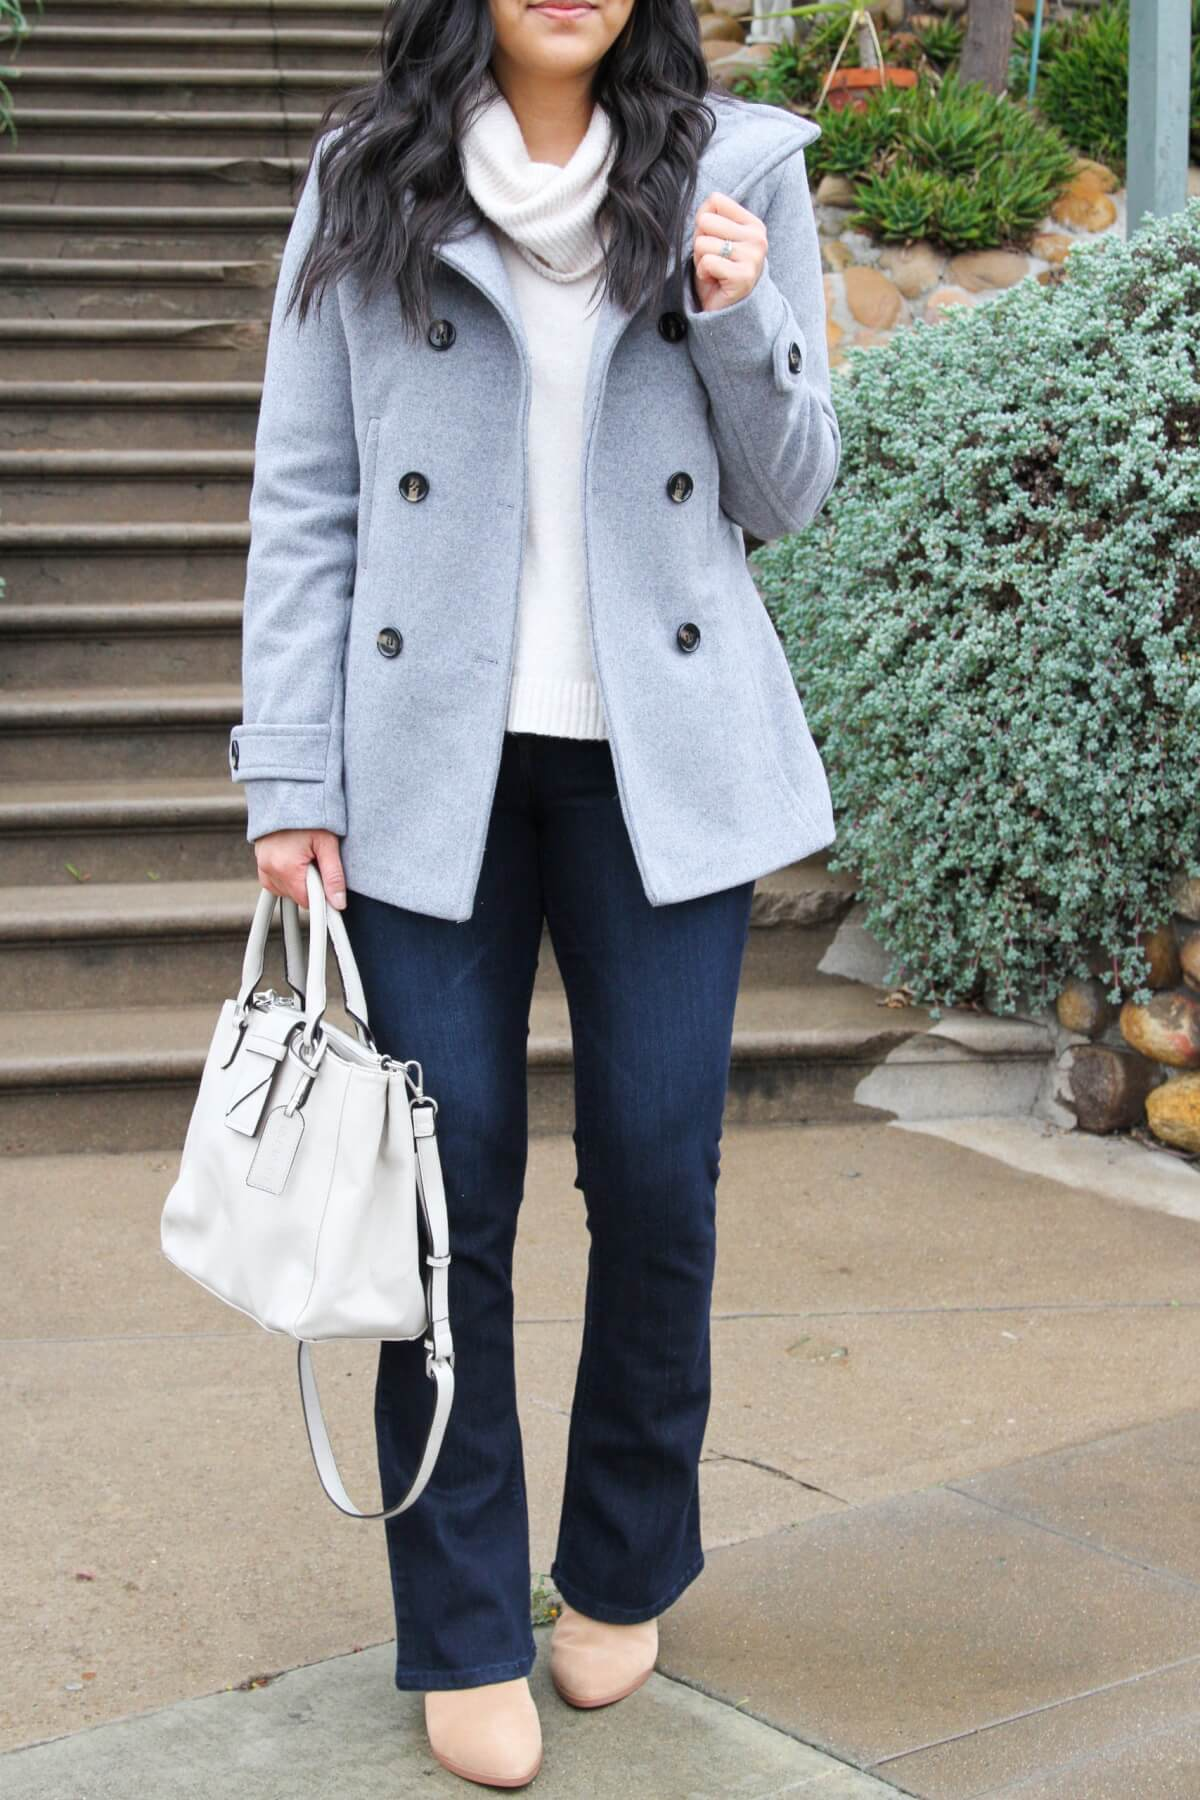 winter outfit close up: white turtleneck sweater + gray peacoat + blue jeans + white handbag